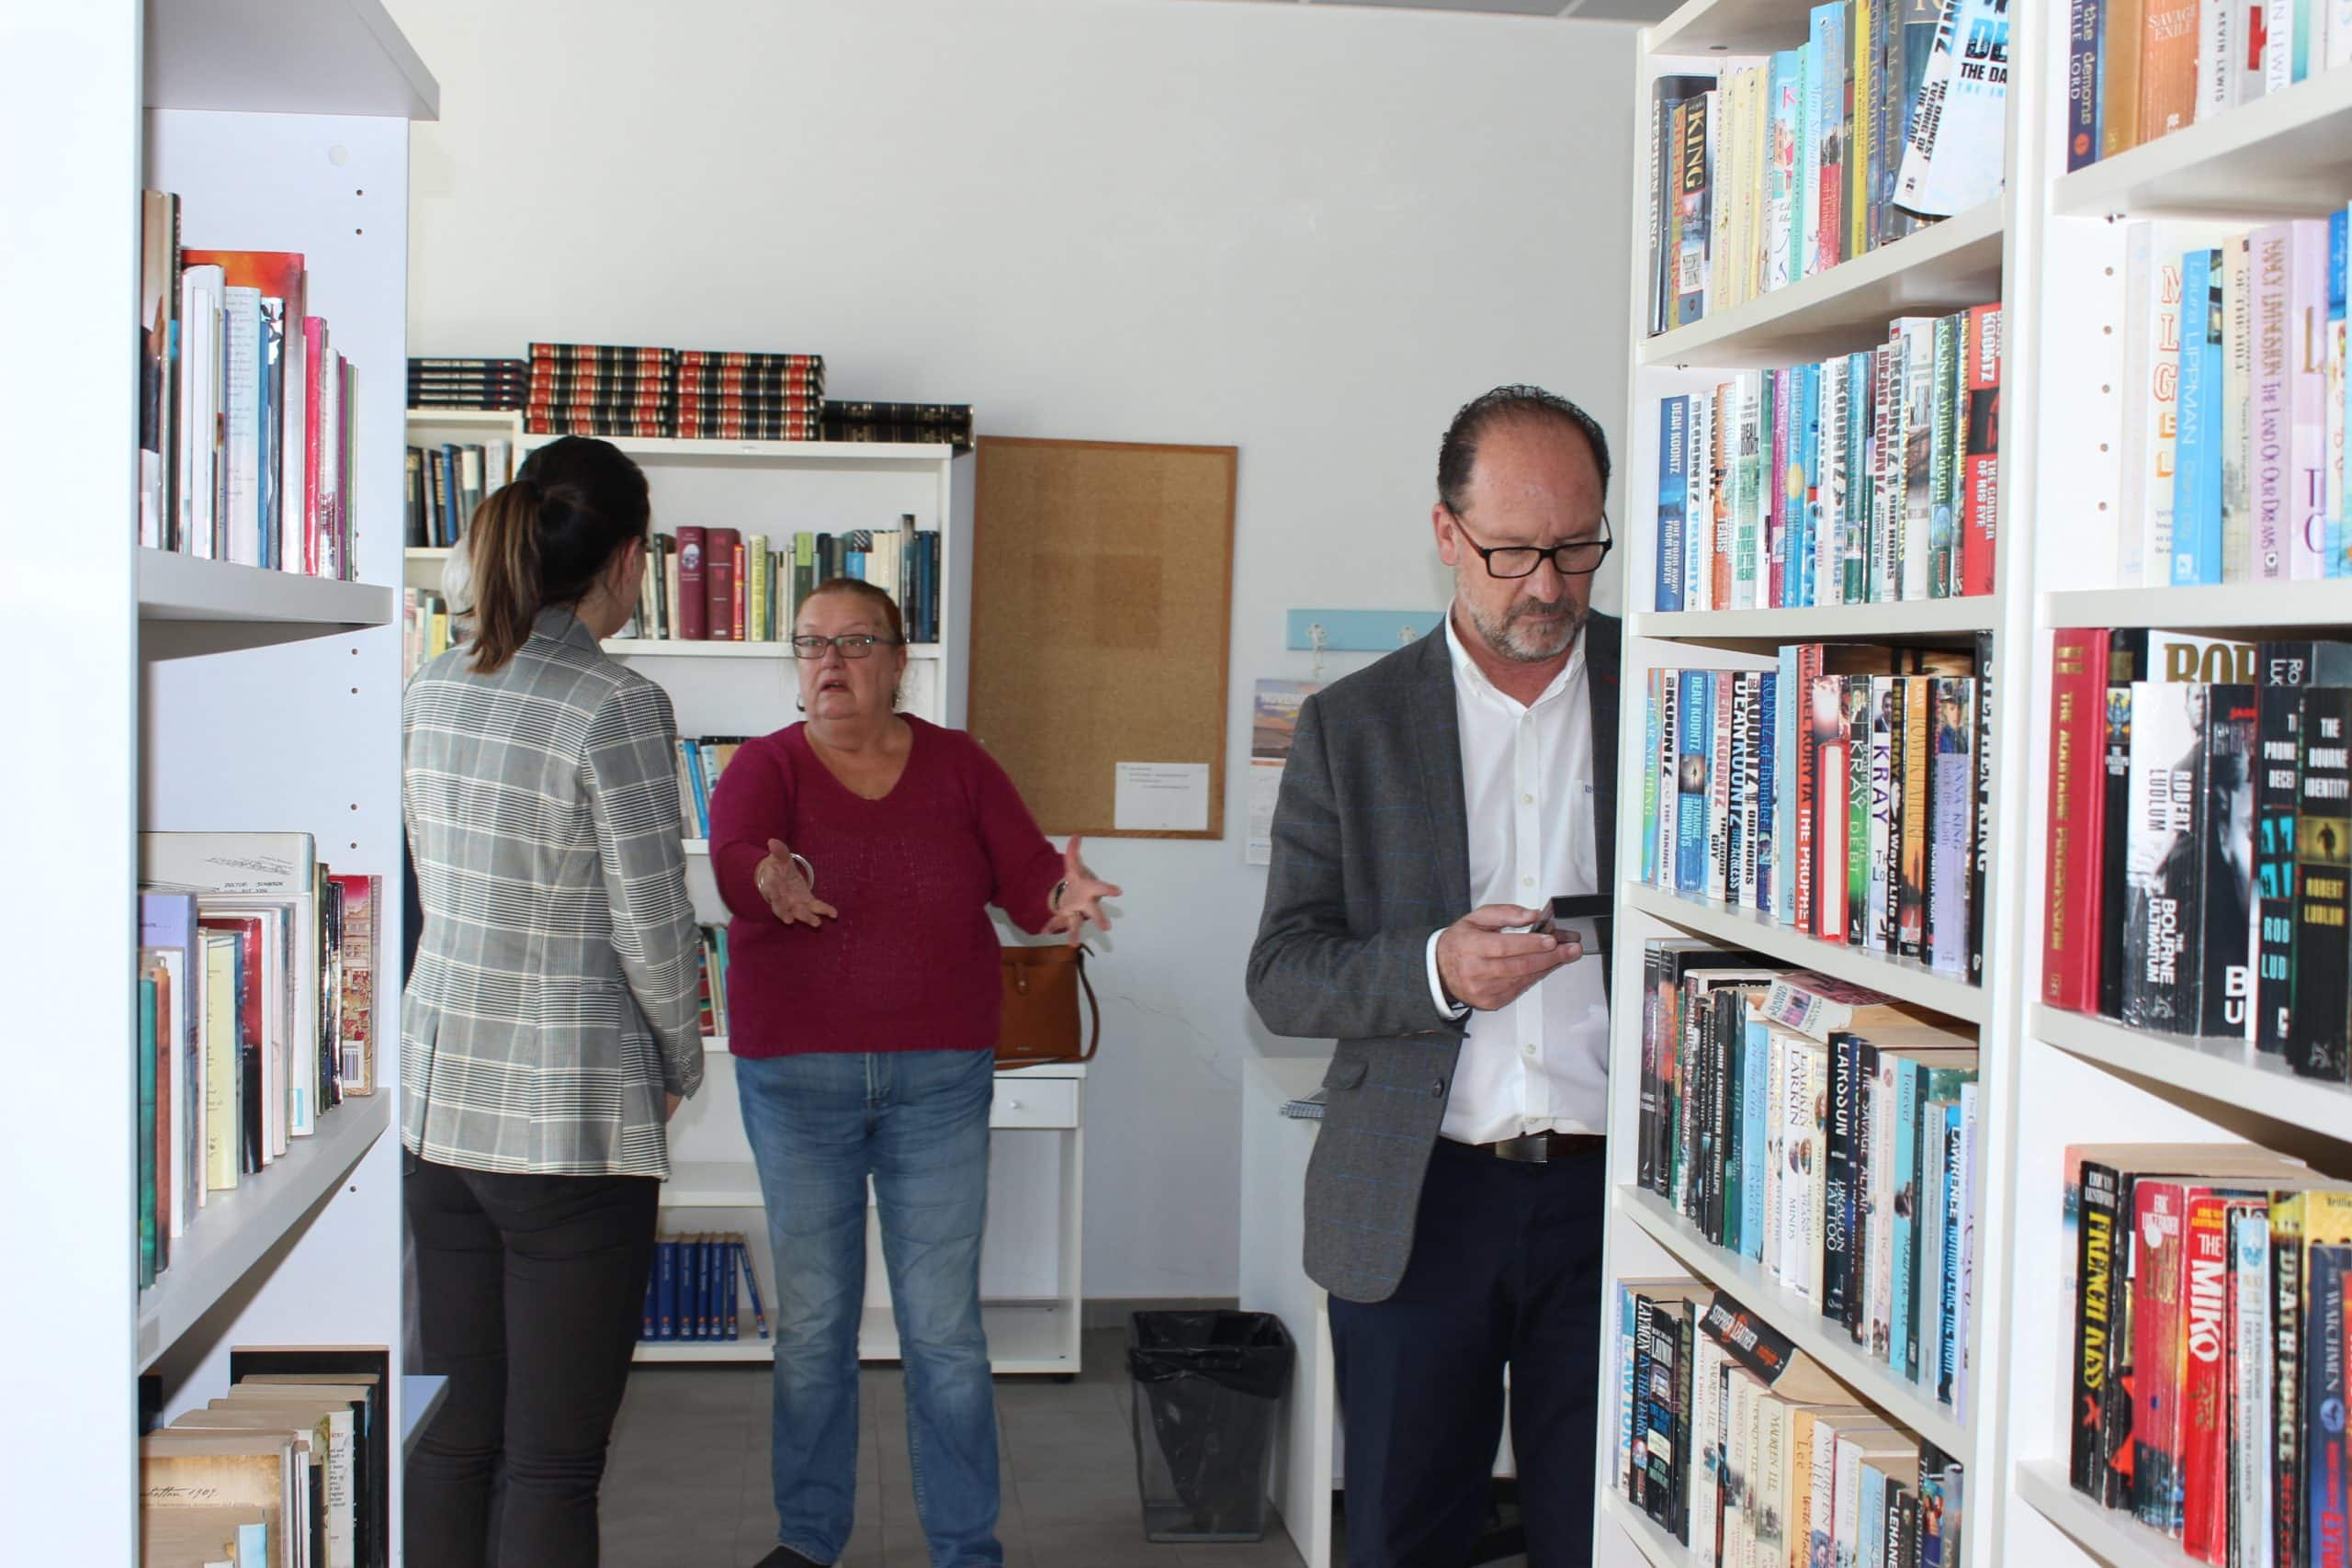 The mayor in the centre library